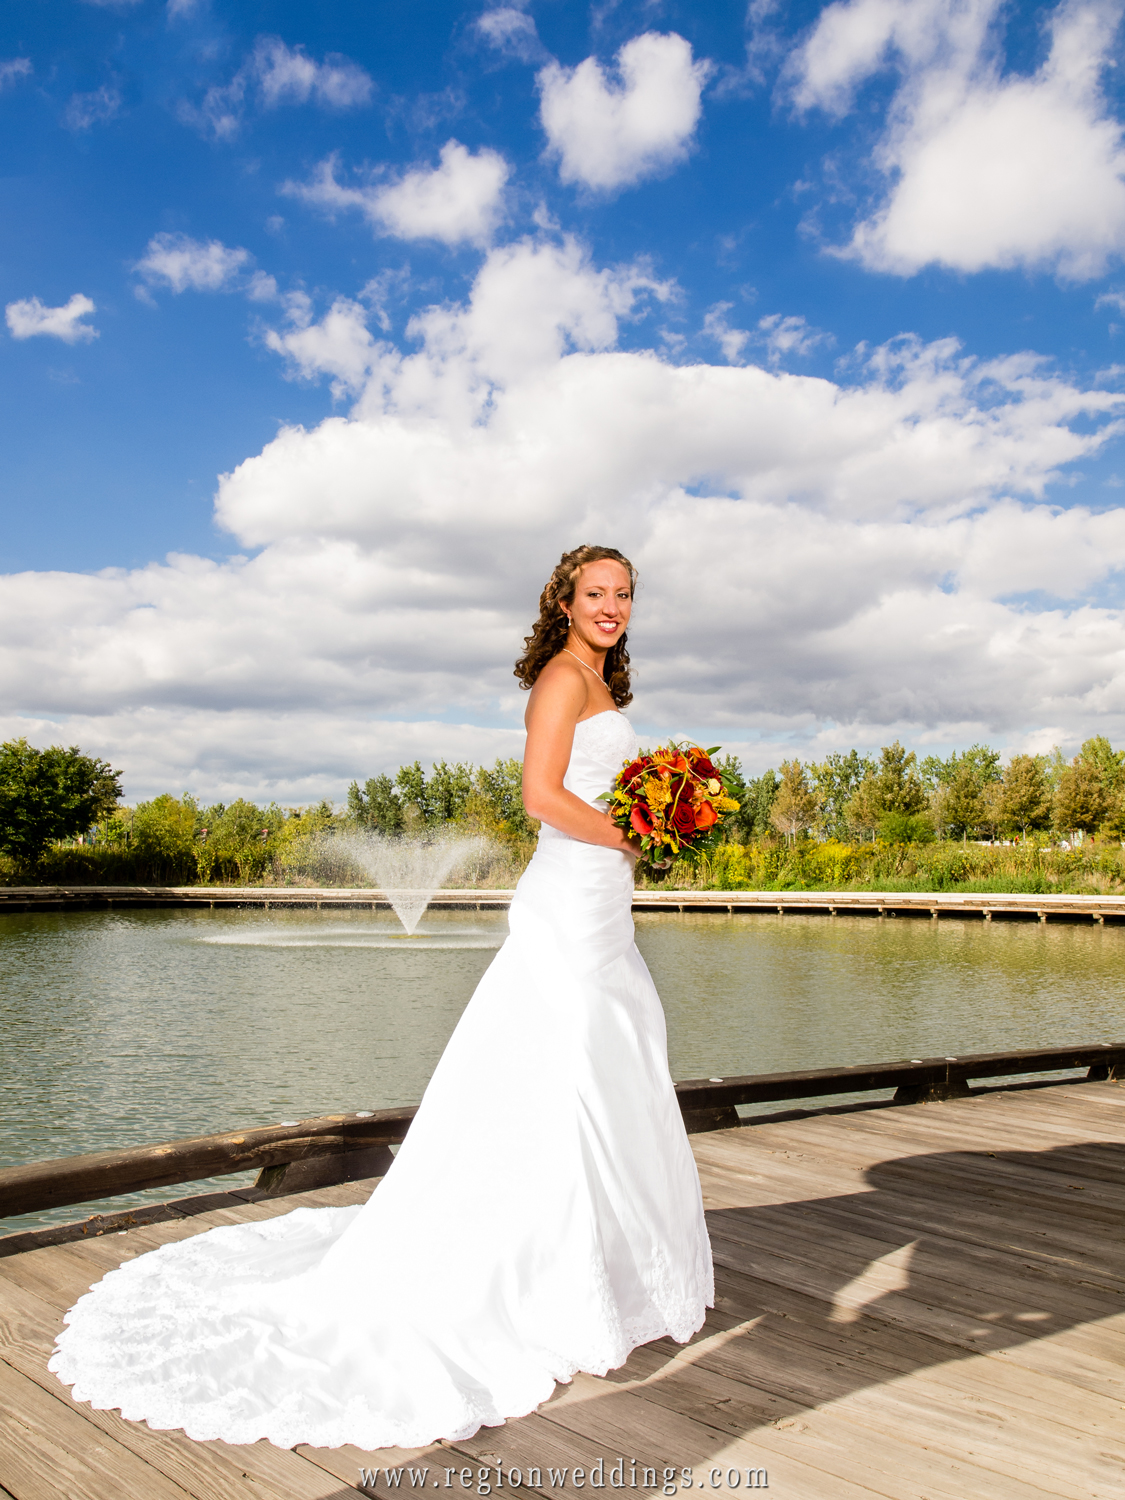 Northwest Indiana Modern And Candid Wedding Photographer Region Weddings